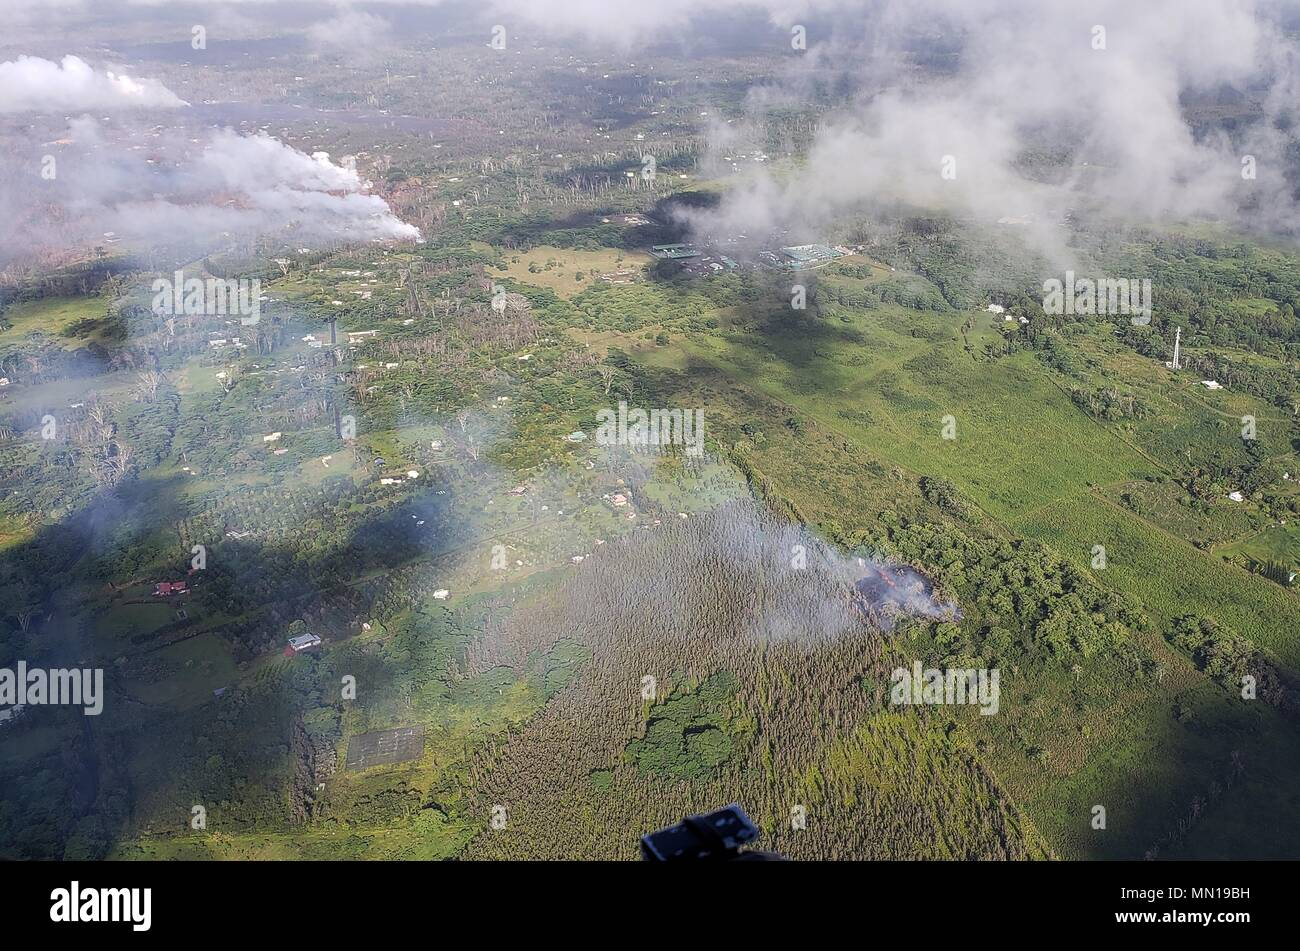 Hawaii, USA 12th May 2018. An aerial view of steam and lava escaping from newly formed fissure 16 from the Kilauea volcano May 12, 2018 in Leilani Estates, Hawaii. The fissure is located 500 meters northeast of the Puna Geothermal Venture site (top right). Credit: Planetpix/Alamy Live NewsStock Photo